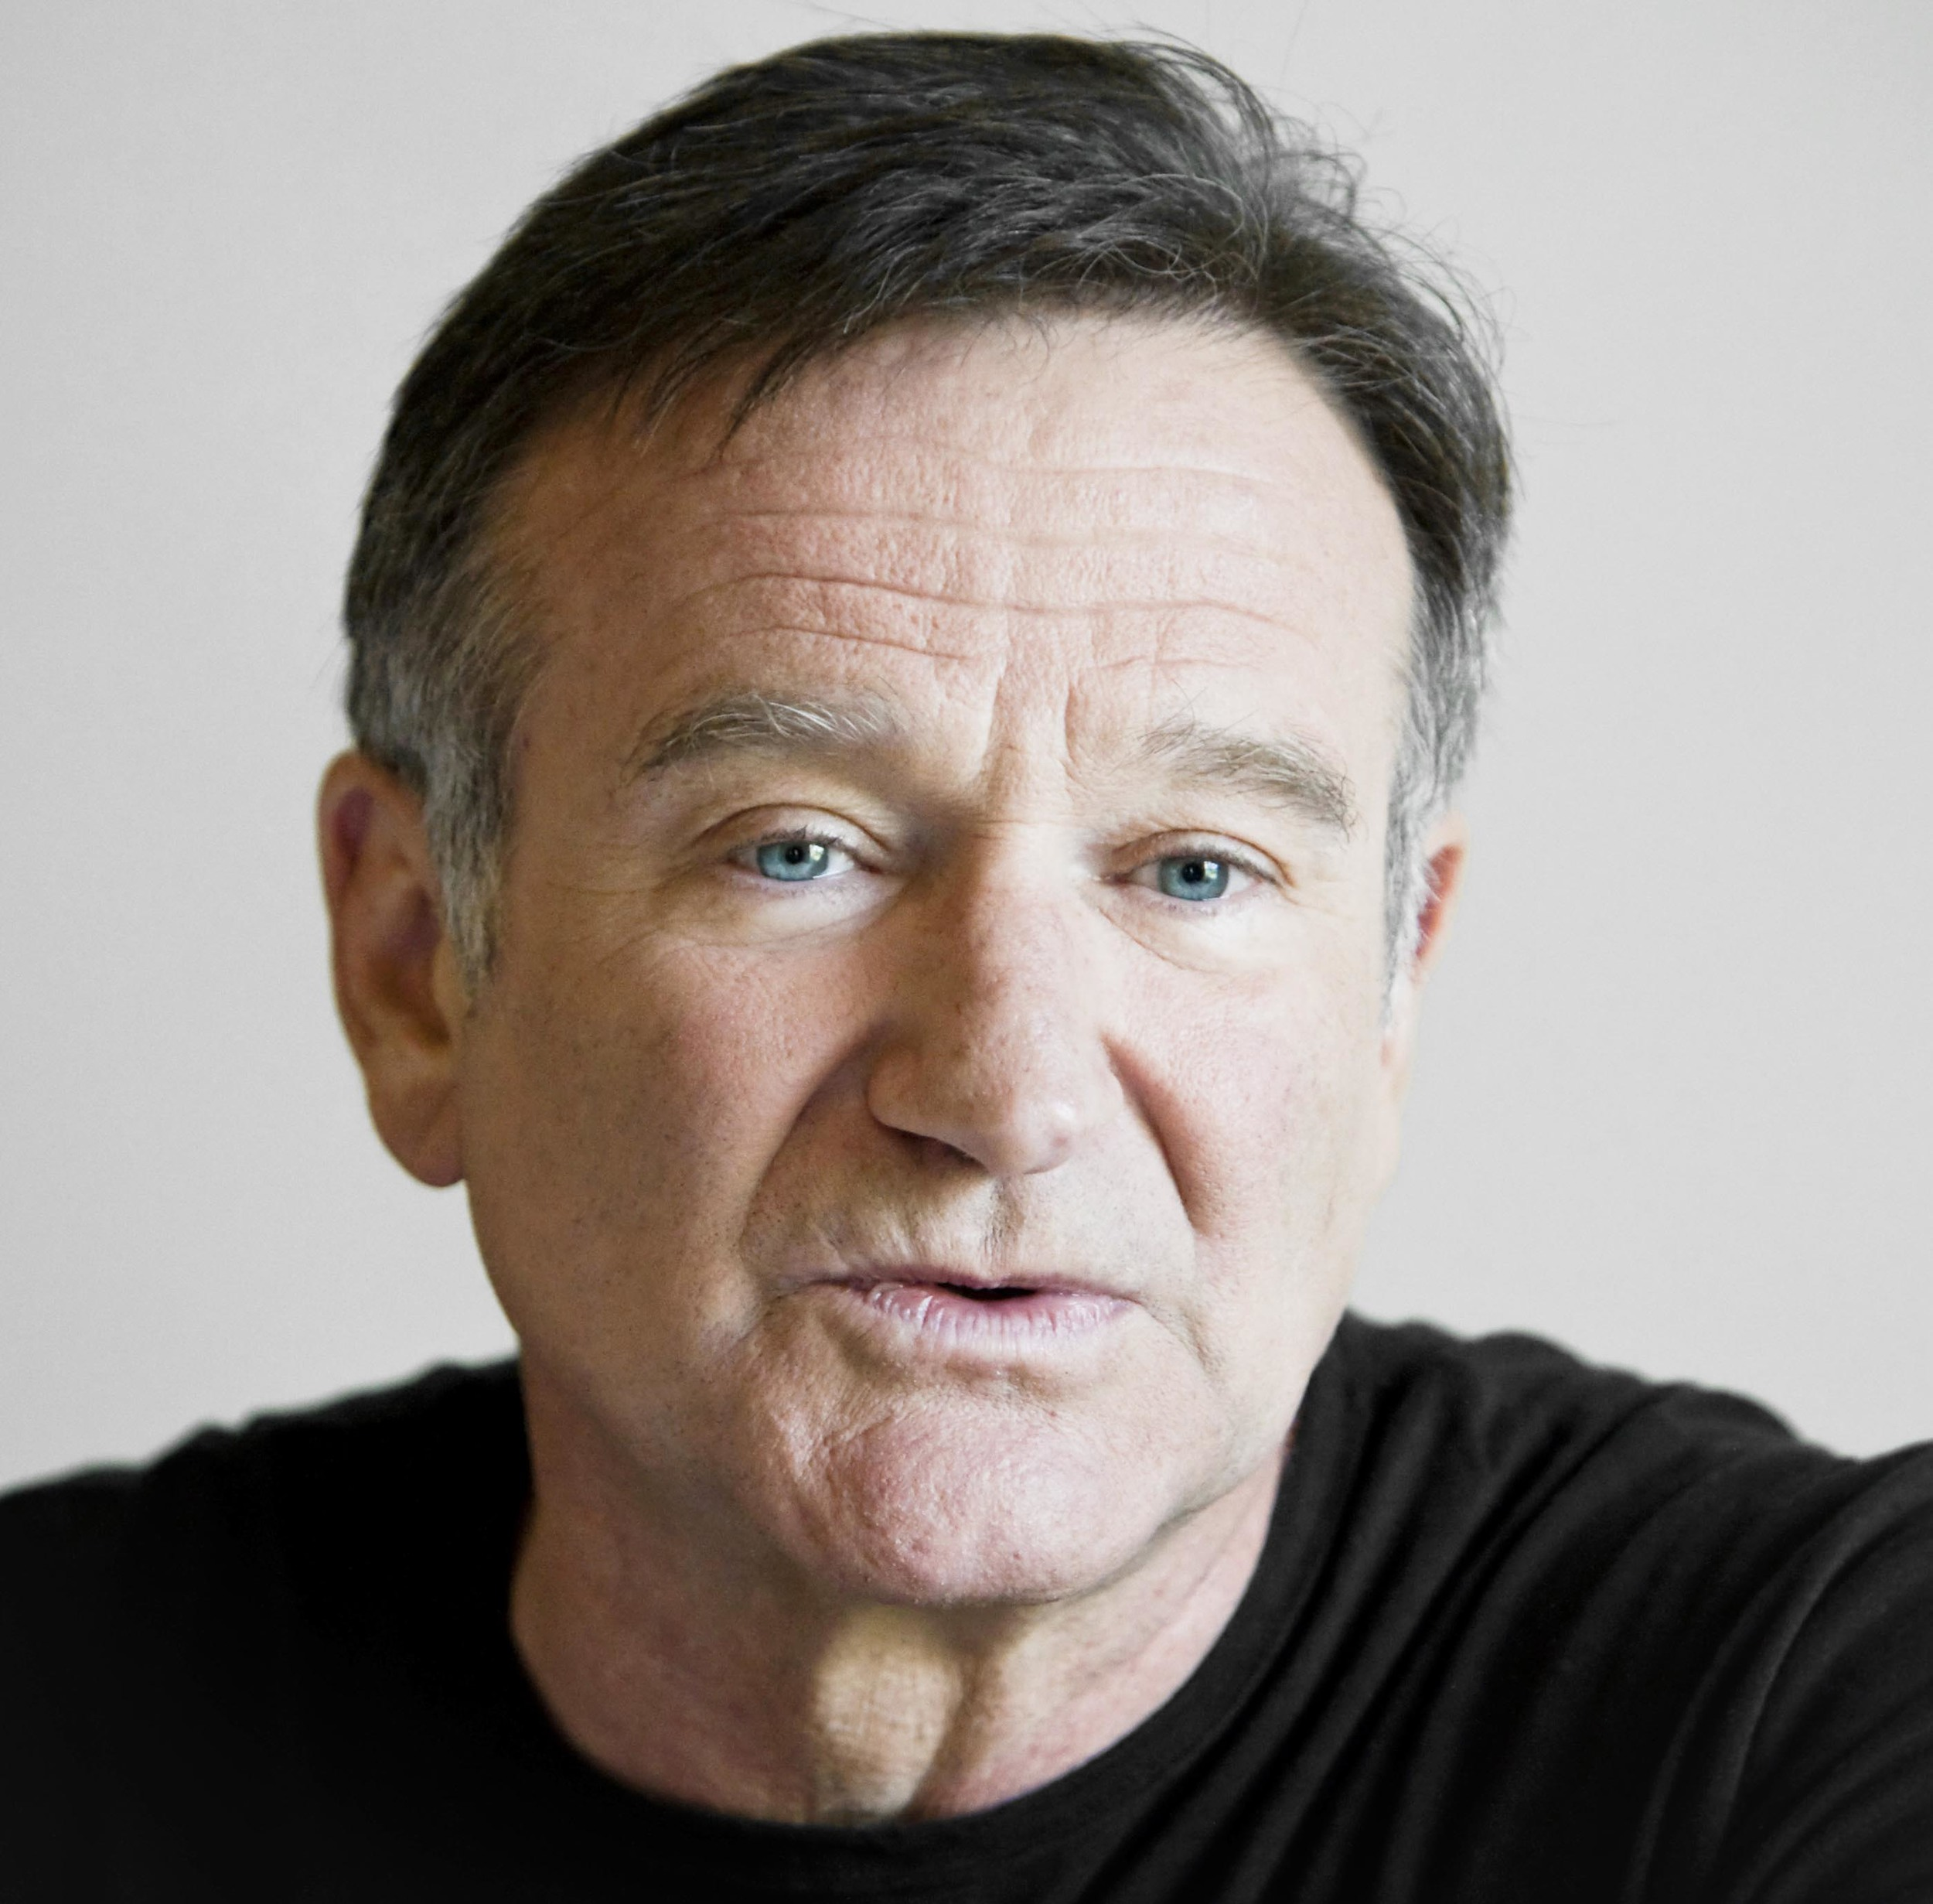 Robin Williams - Infamous comedian, actor, humanitarian. Inspiration to so many. 7/21/51 - 08/11/2014 Image borrowed from: http://www.politicususa.com/2014/08/12/robin-williams-tragic-potentially-great-legacy.html